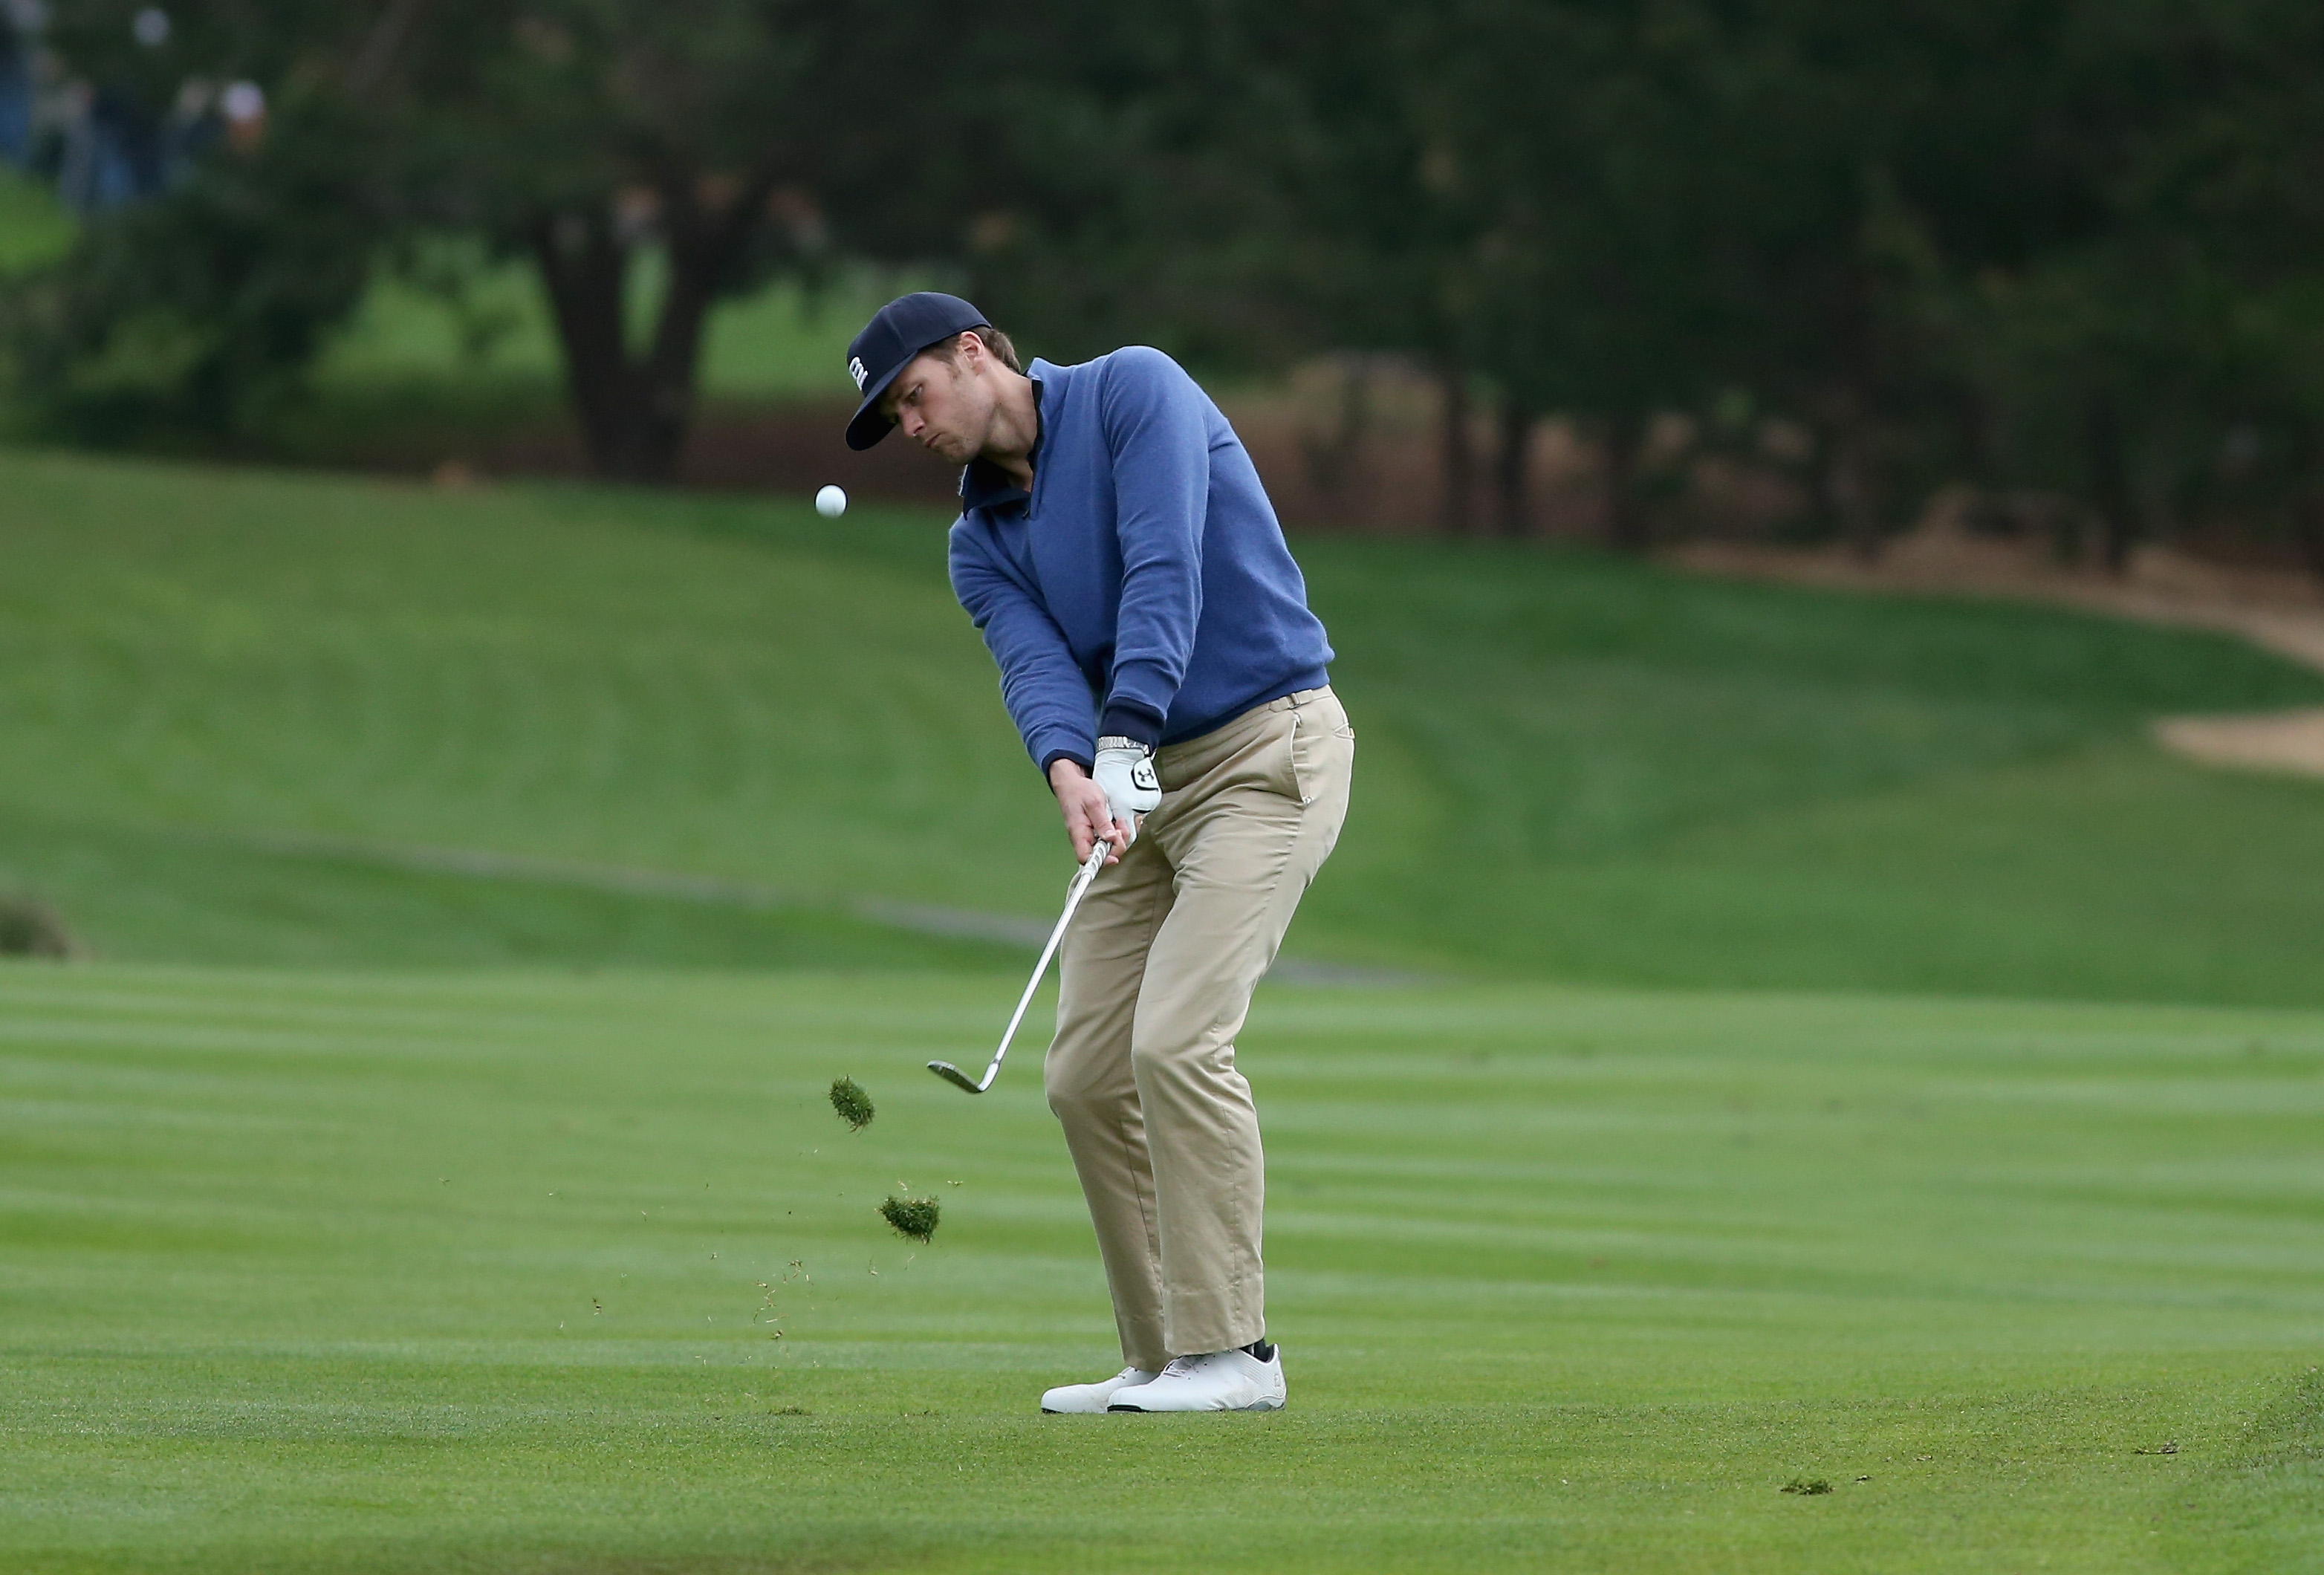 Tom Brady during the third round of the 2014 AT&T Pebble Beach National Pro-Am.